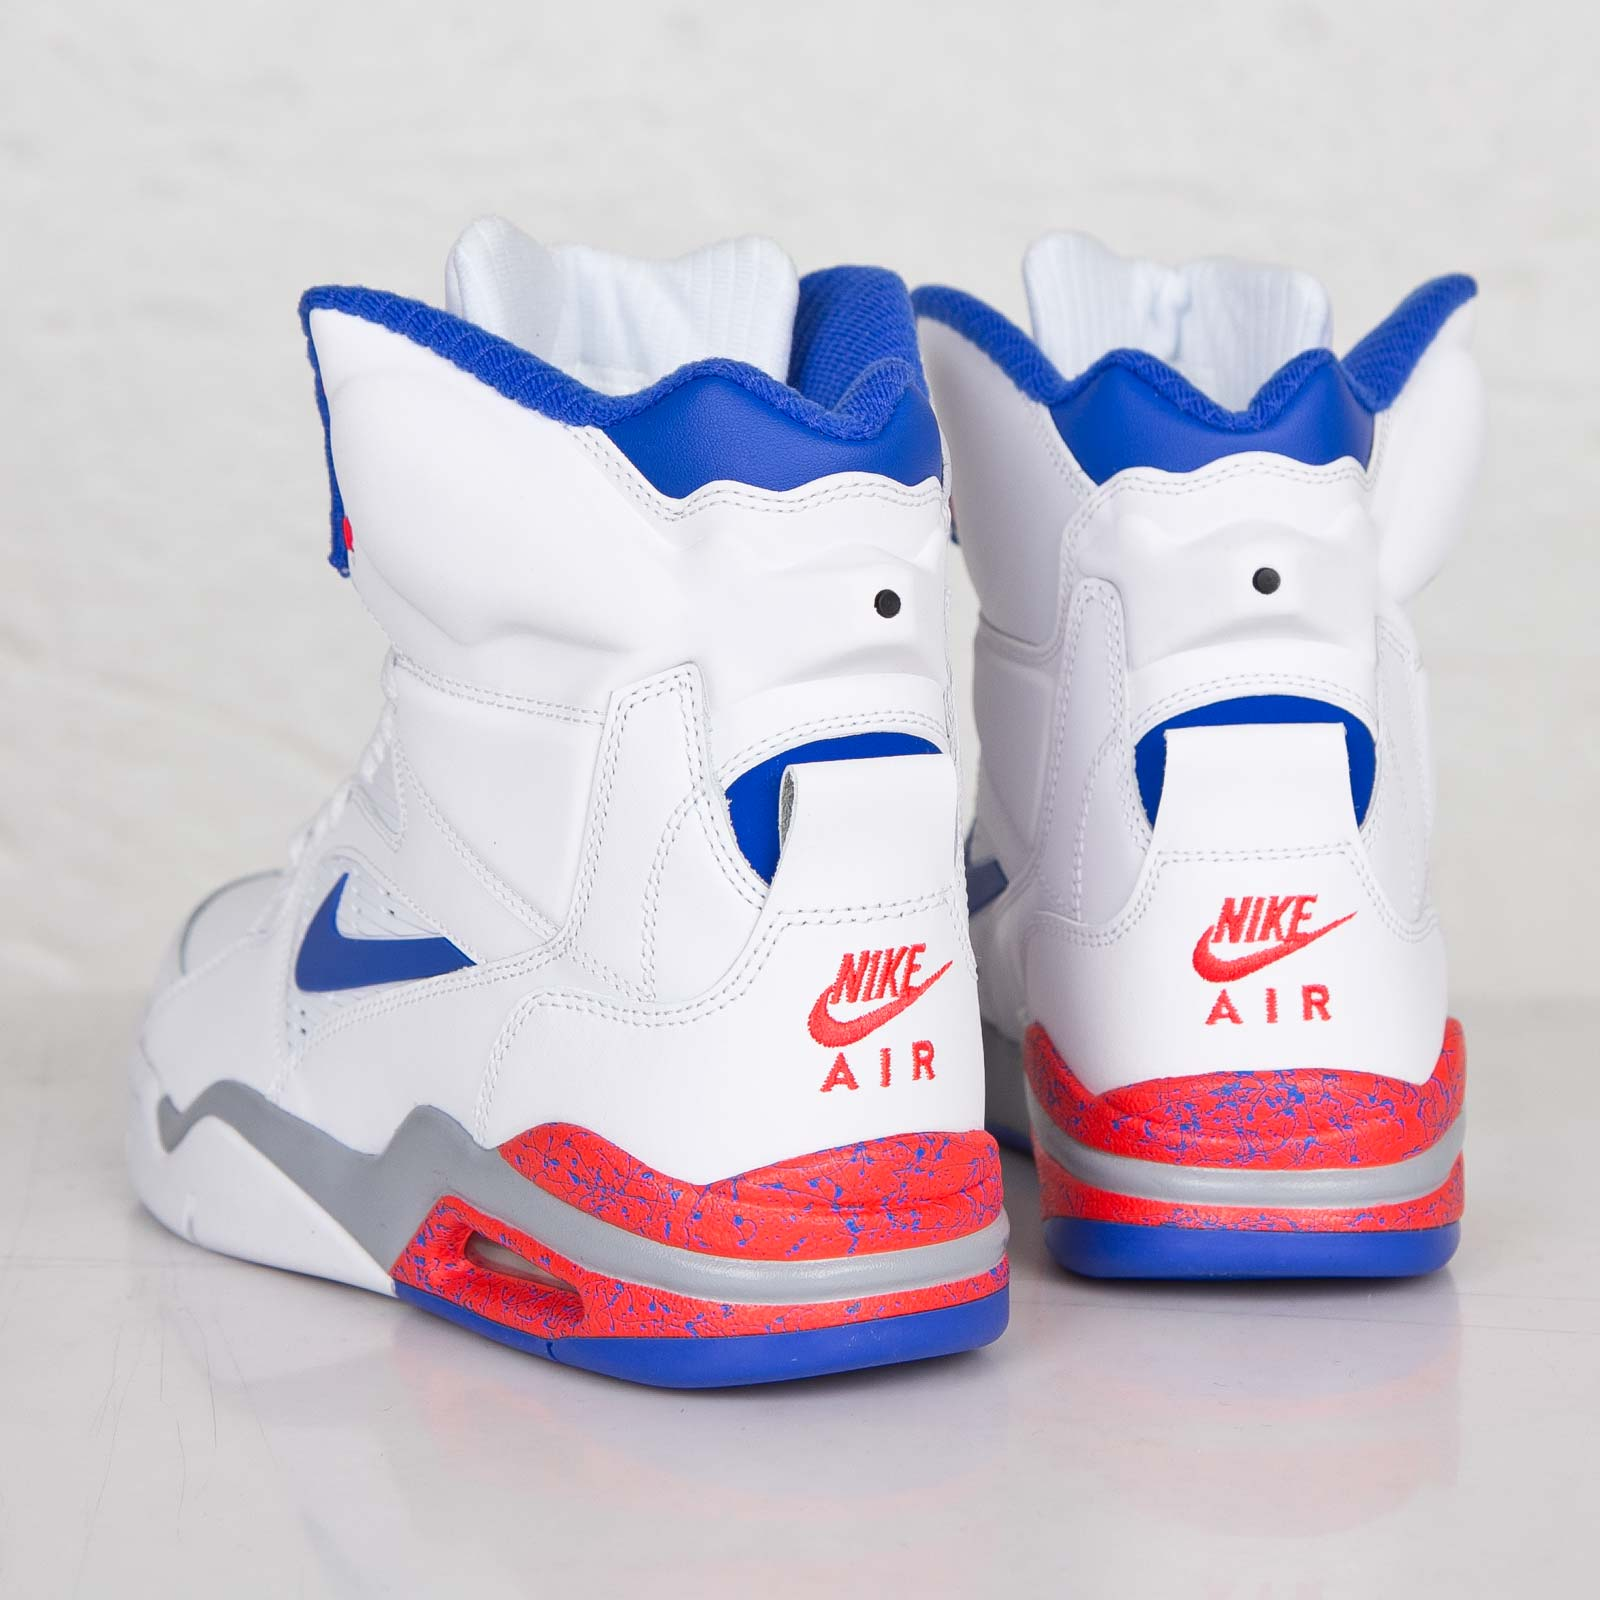 new concept bb78a 7928a Nike Air Command Force - 684715-101 - Sneakersnstuff   sneakers    streetwear online since 1999